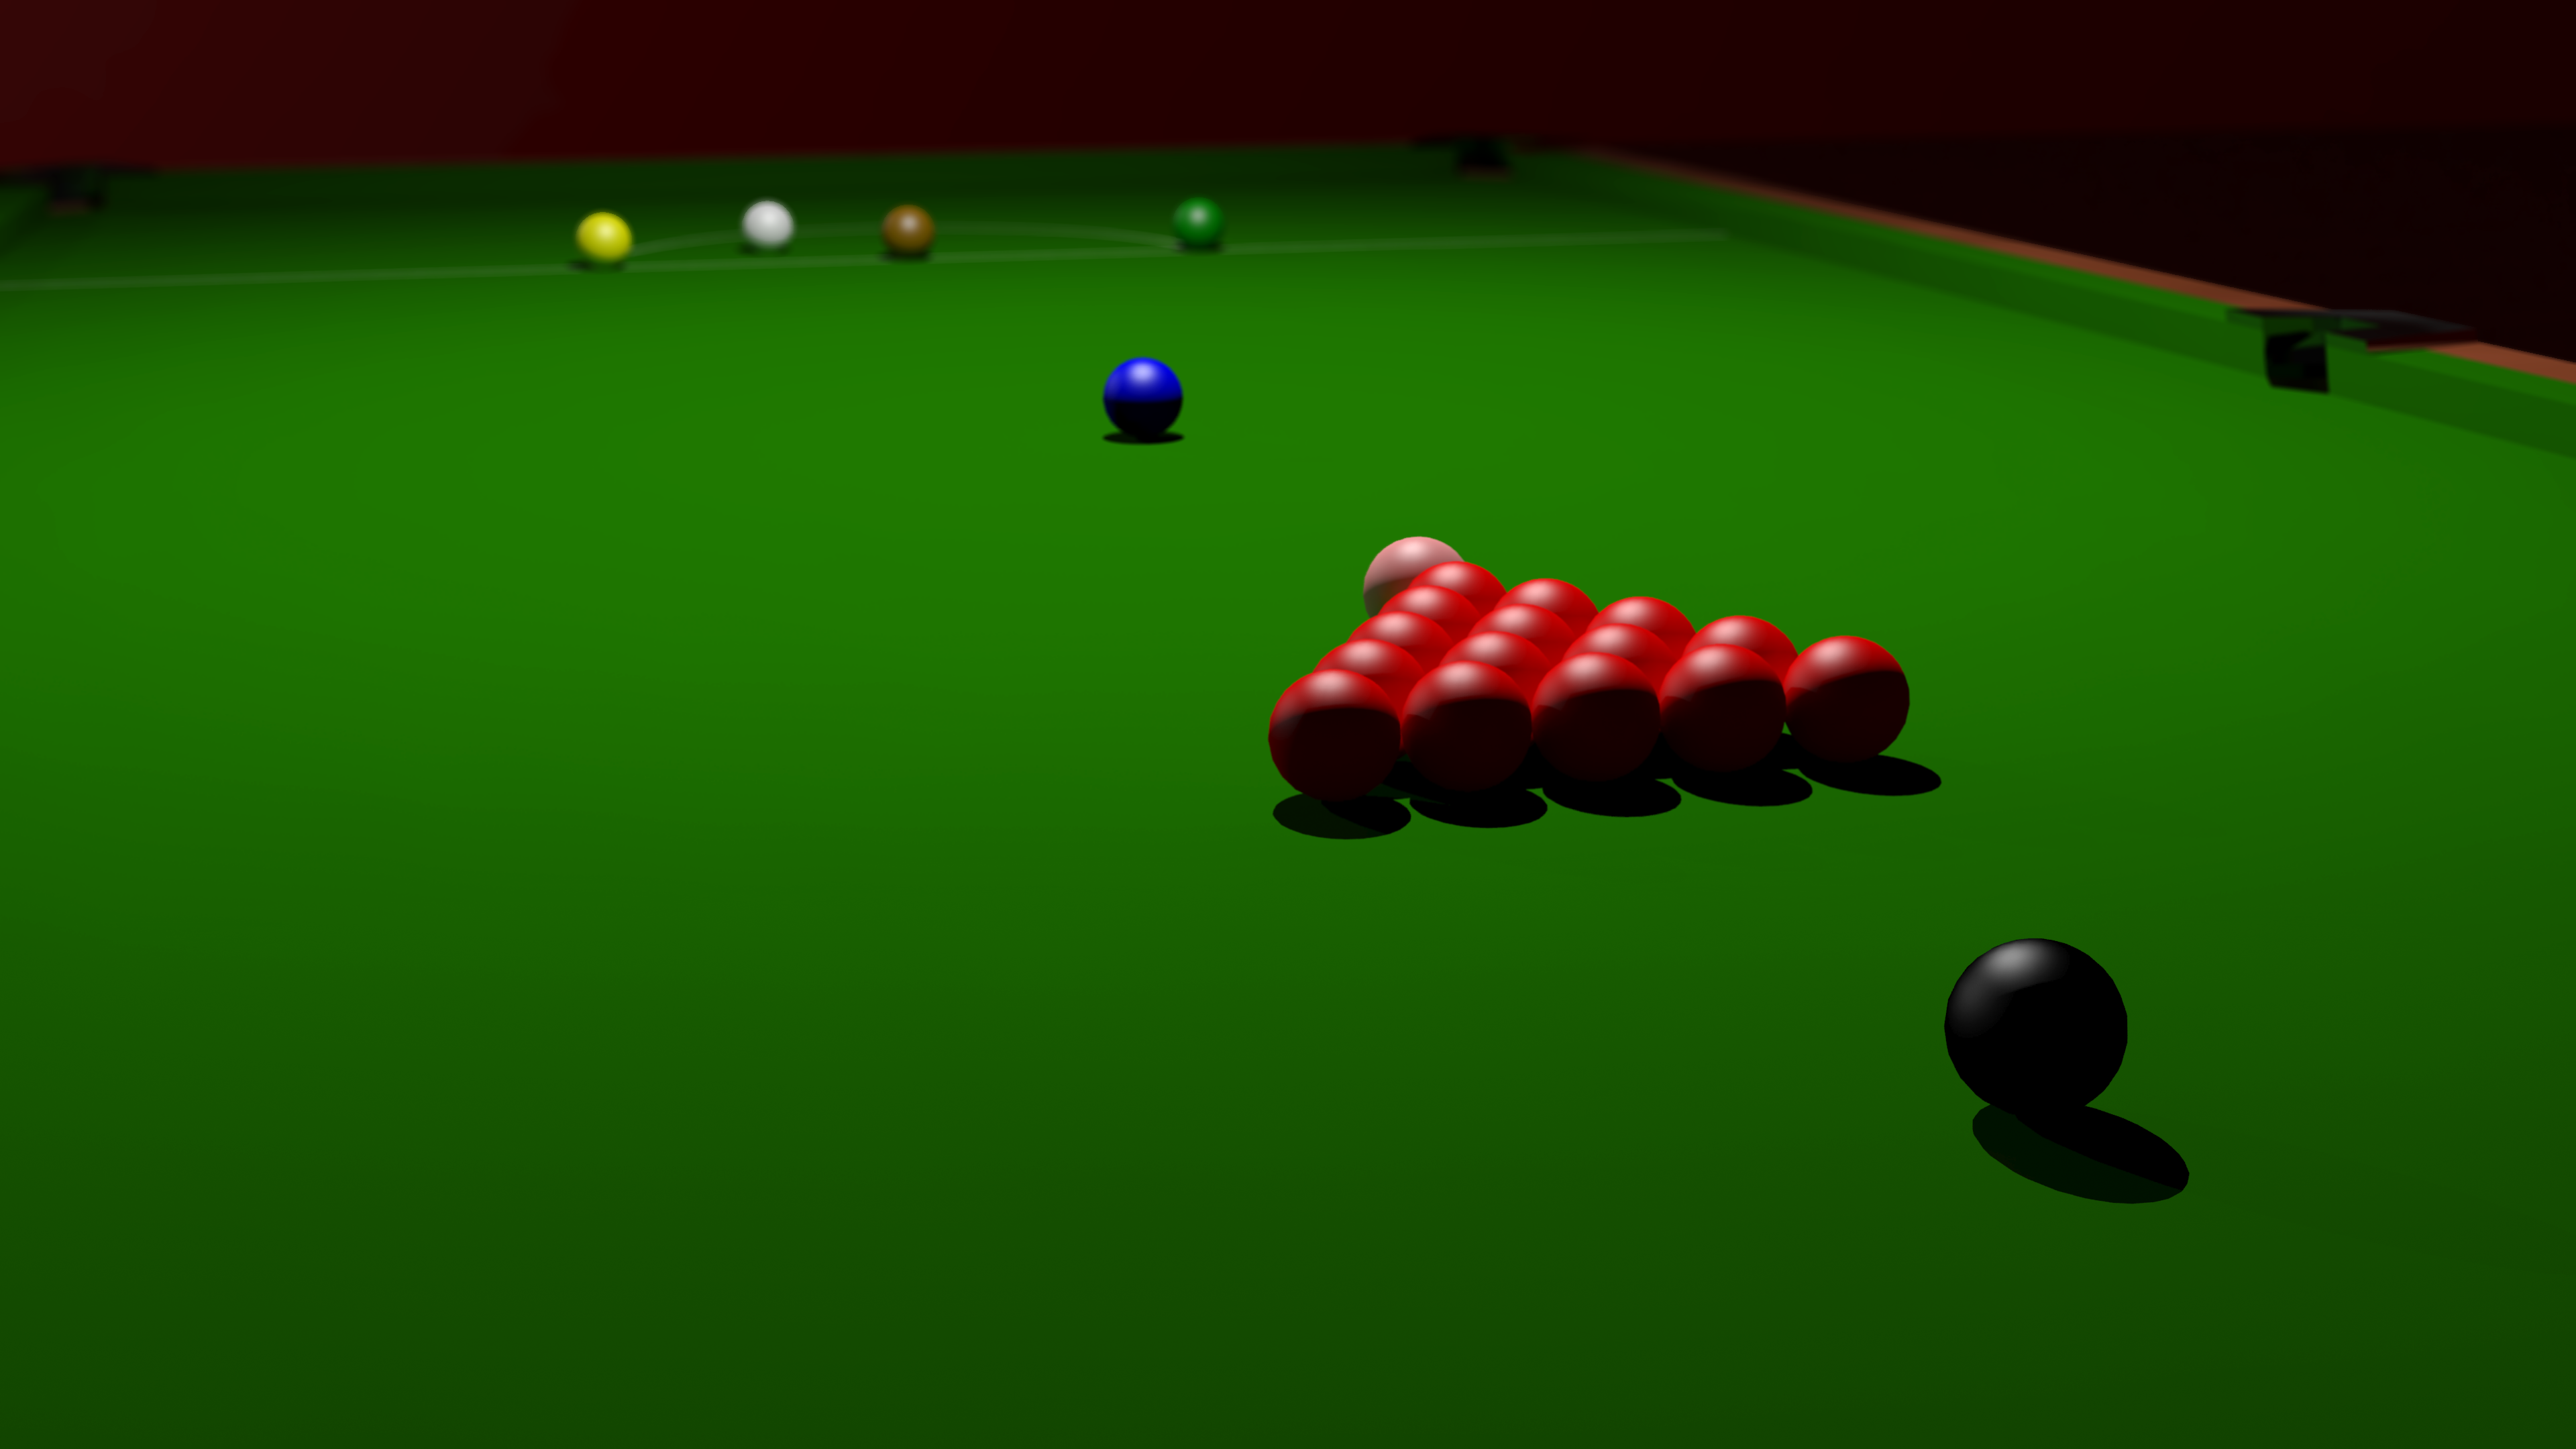 Cool Snooker Wallpaper